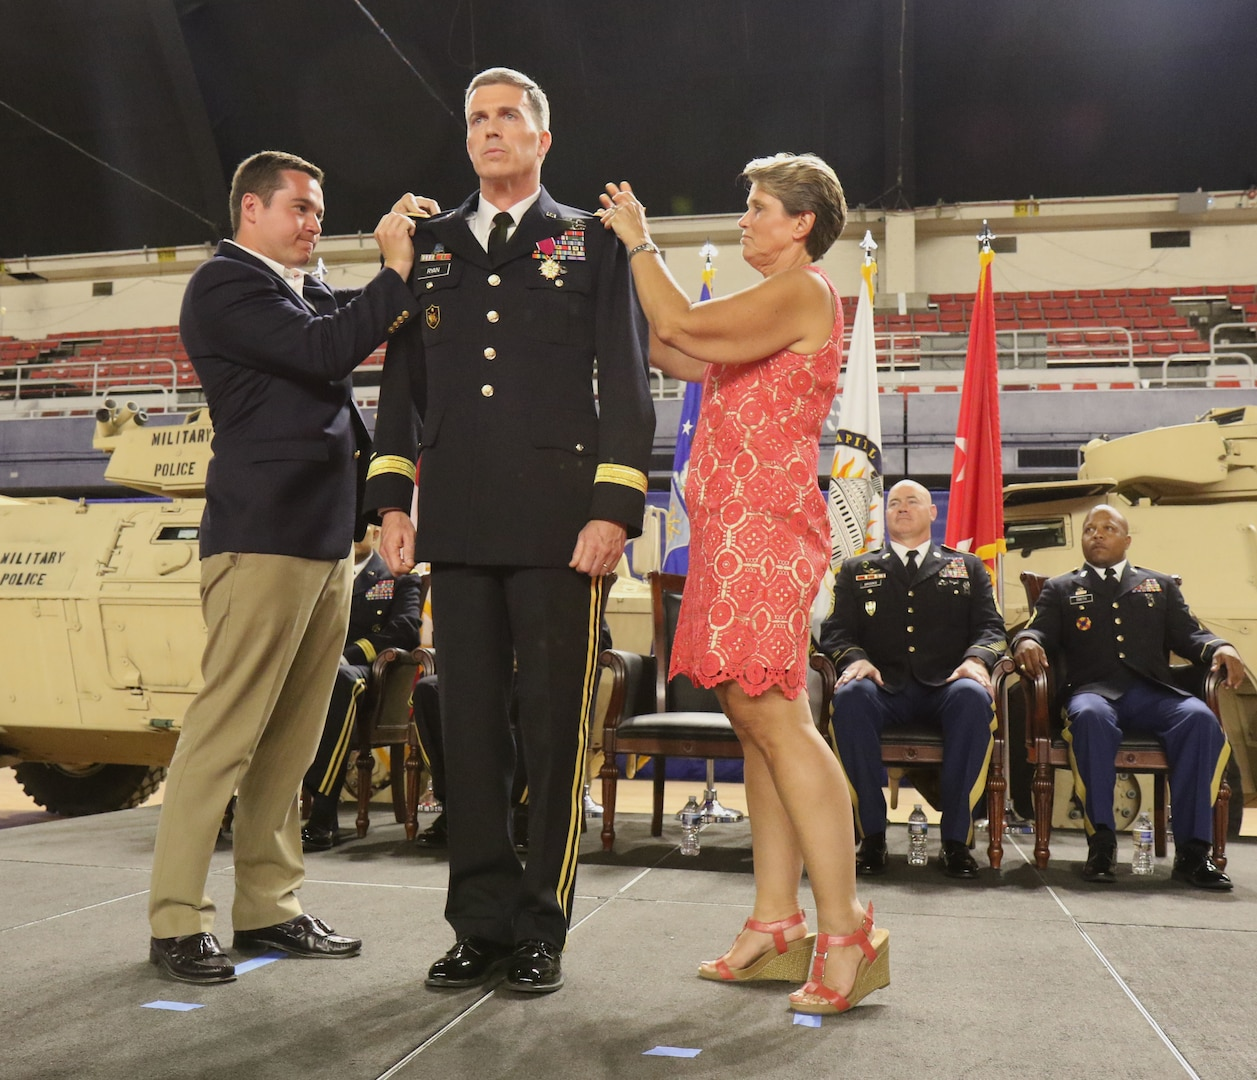 WASHINGTON- Members of Col. Robert K. Ryan's family pin on his new rank of brigadier general during a ceremony, June 10, 2018 at the District of Columbia Armory. Ryan is appointed Commander, Land Component Command, D.C. Army National Guard and will be responsible for strategic leadership and policies that affect all Army Soldiers in the D.C. National Guard, and for mission readiness of units assigned to the Land Component Command. (U.S. Army National Guard photo by Sgt. Adrian Shelton/Released)